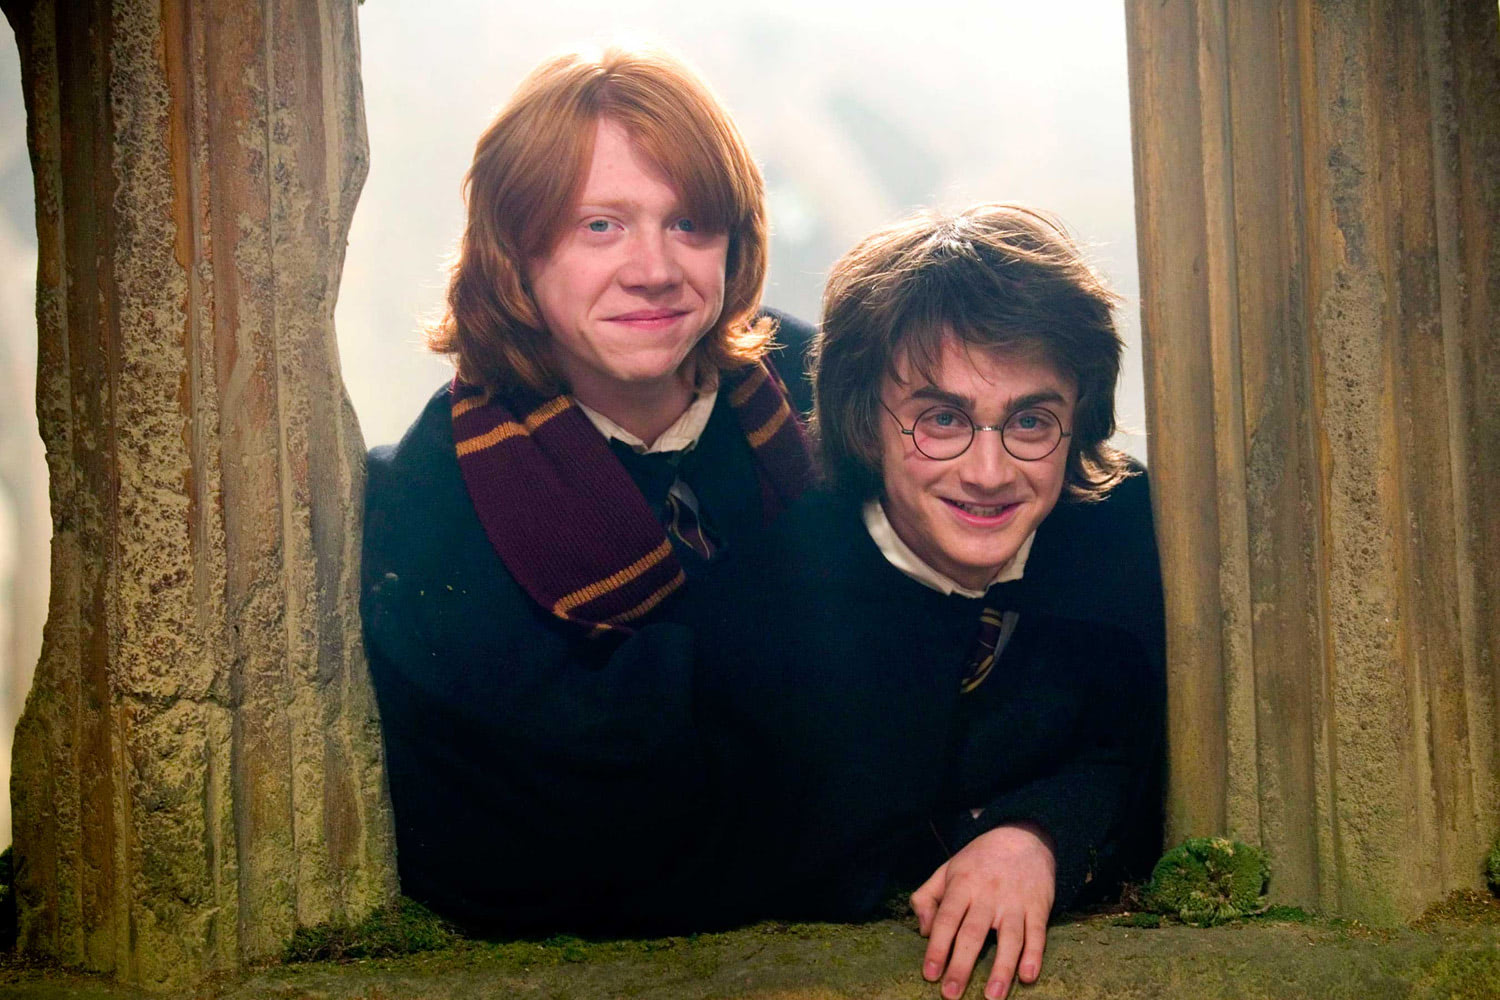 Harry and Ron smiling